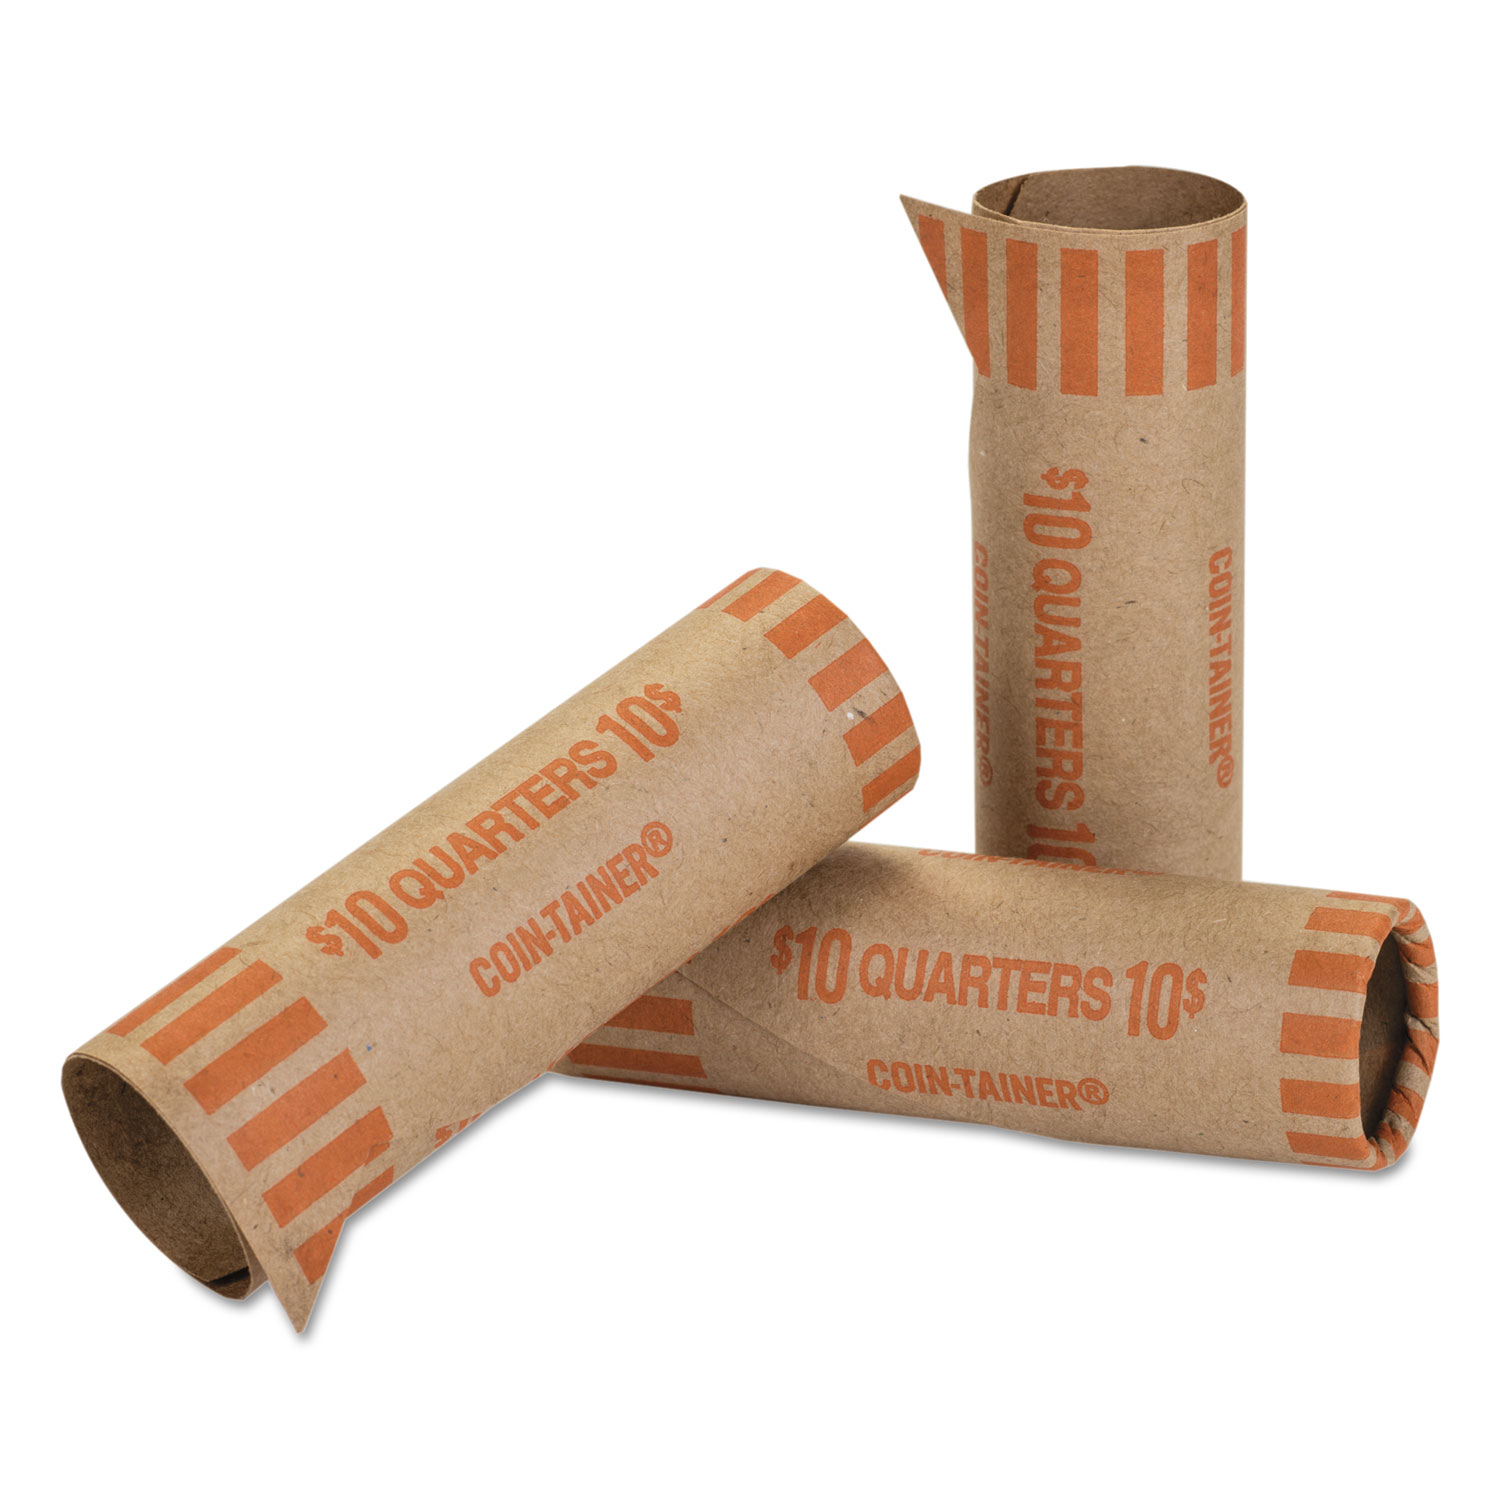 Coin-Tainer® Preformed Tubular Coin Wrappers